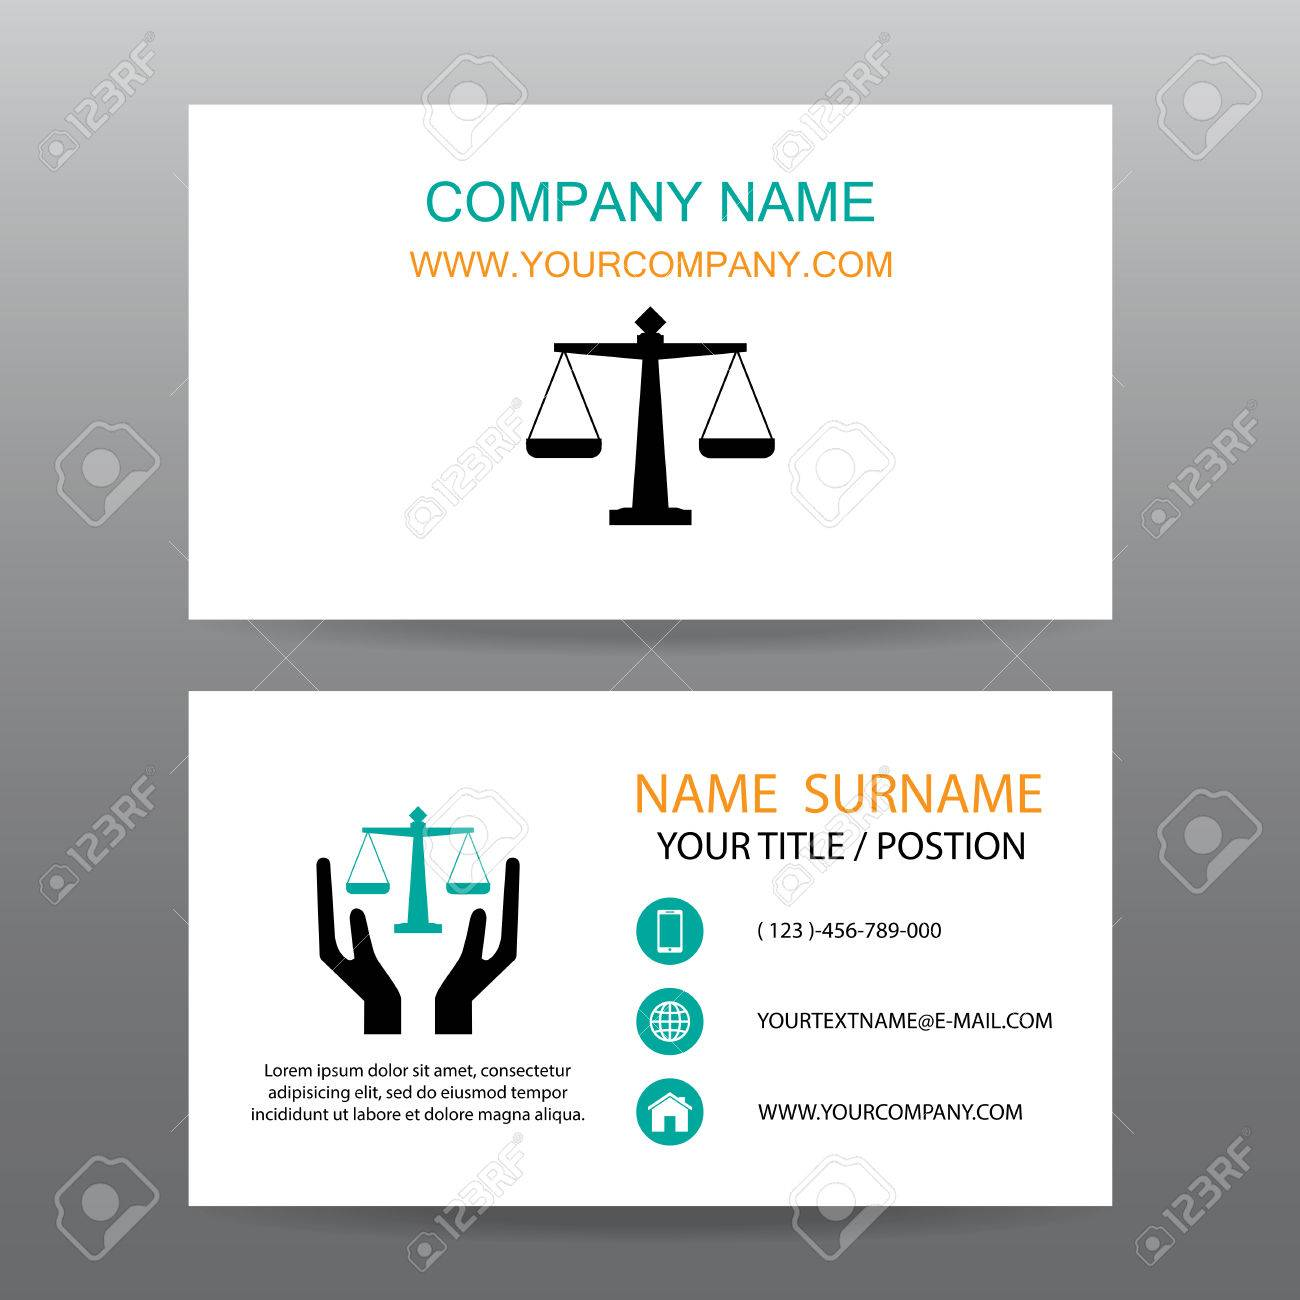 Business Cards For Insurance Agents Images - Free Business Cards